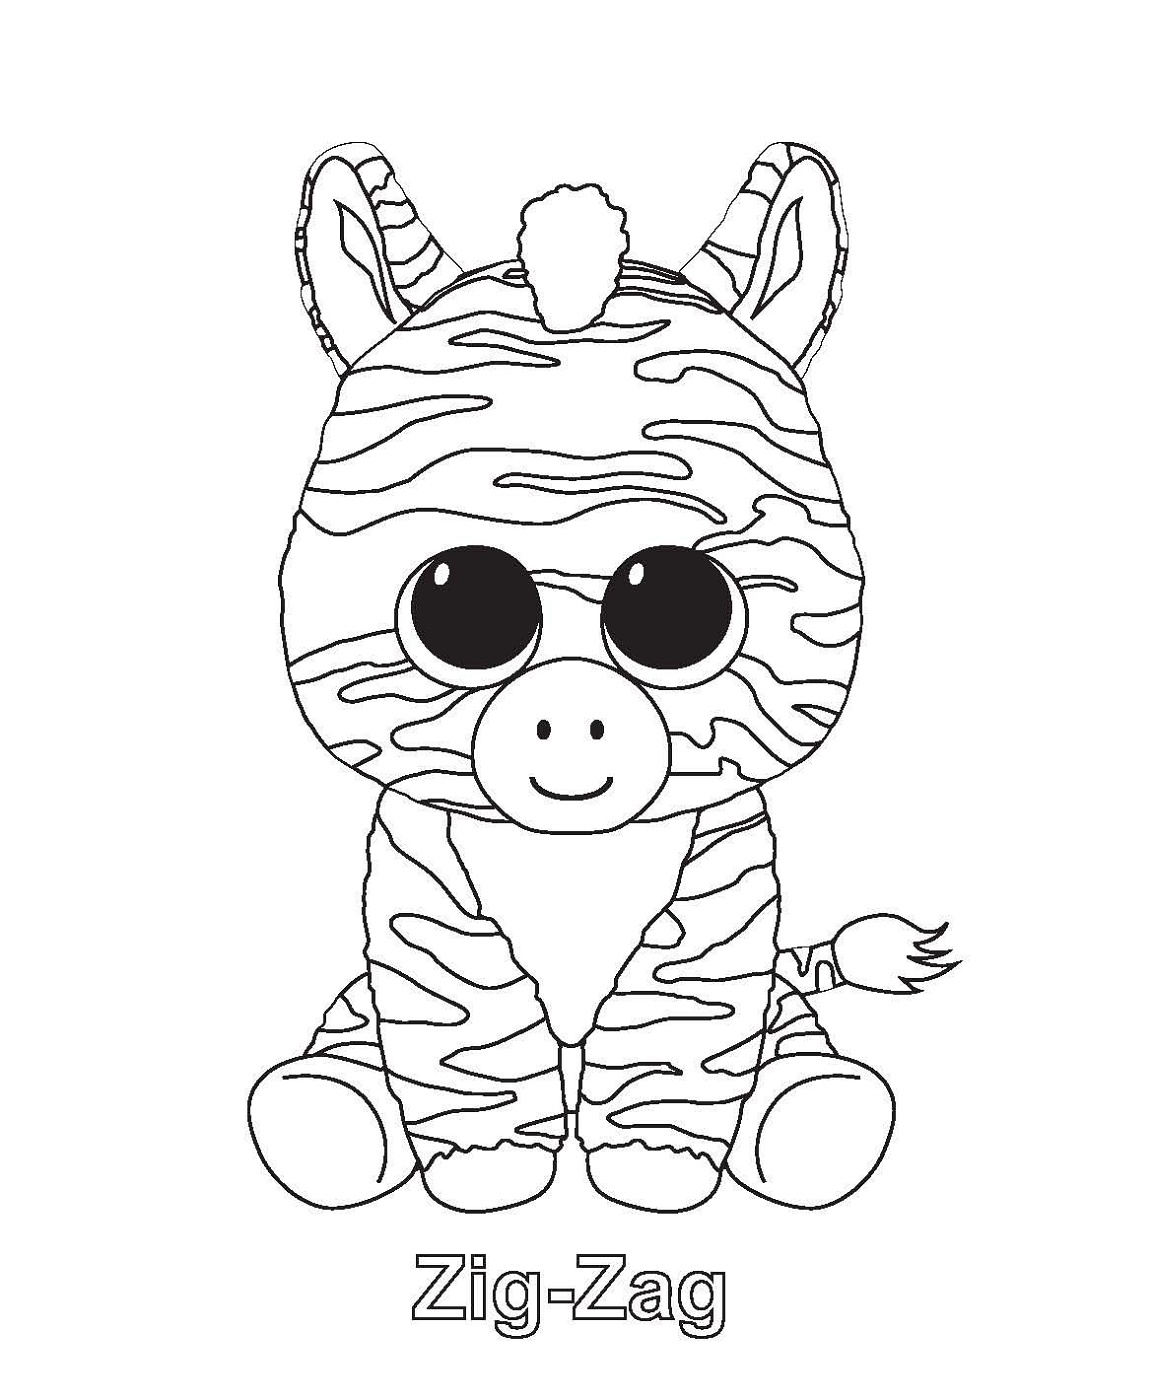 Beanie-Boo-Coloring-Pages-Zig-Zag